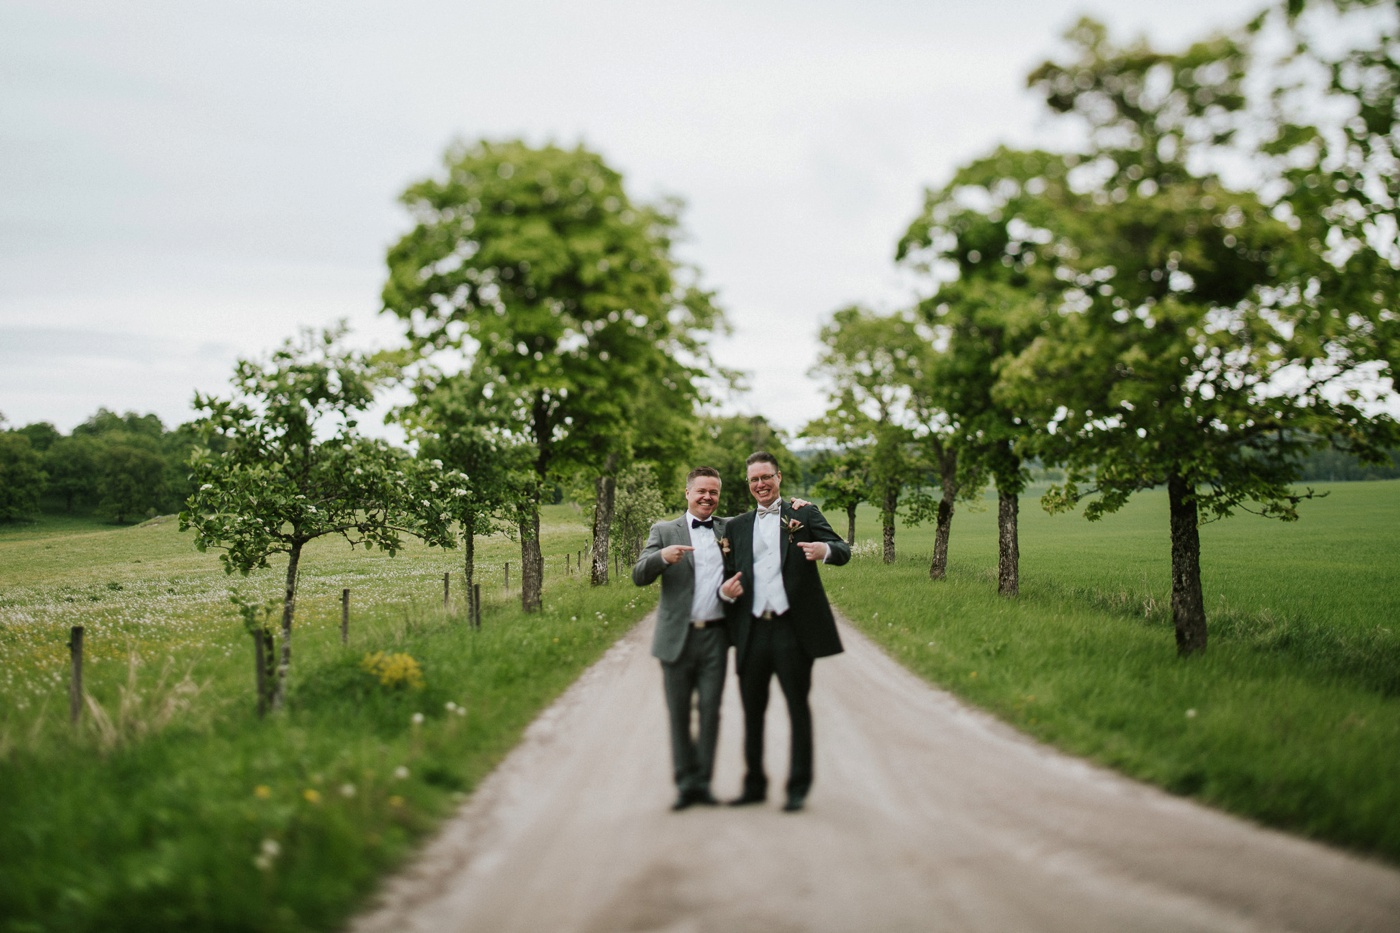 Torbjorn&Paula_Swedish-countryside-rustic-relaxed-wedding_Melbourne-Wedding-Photography_57